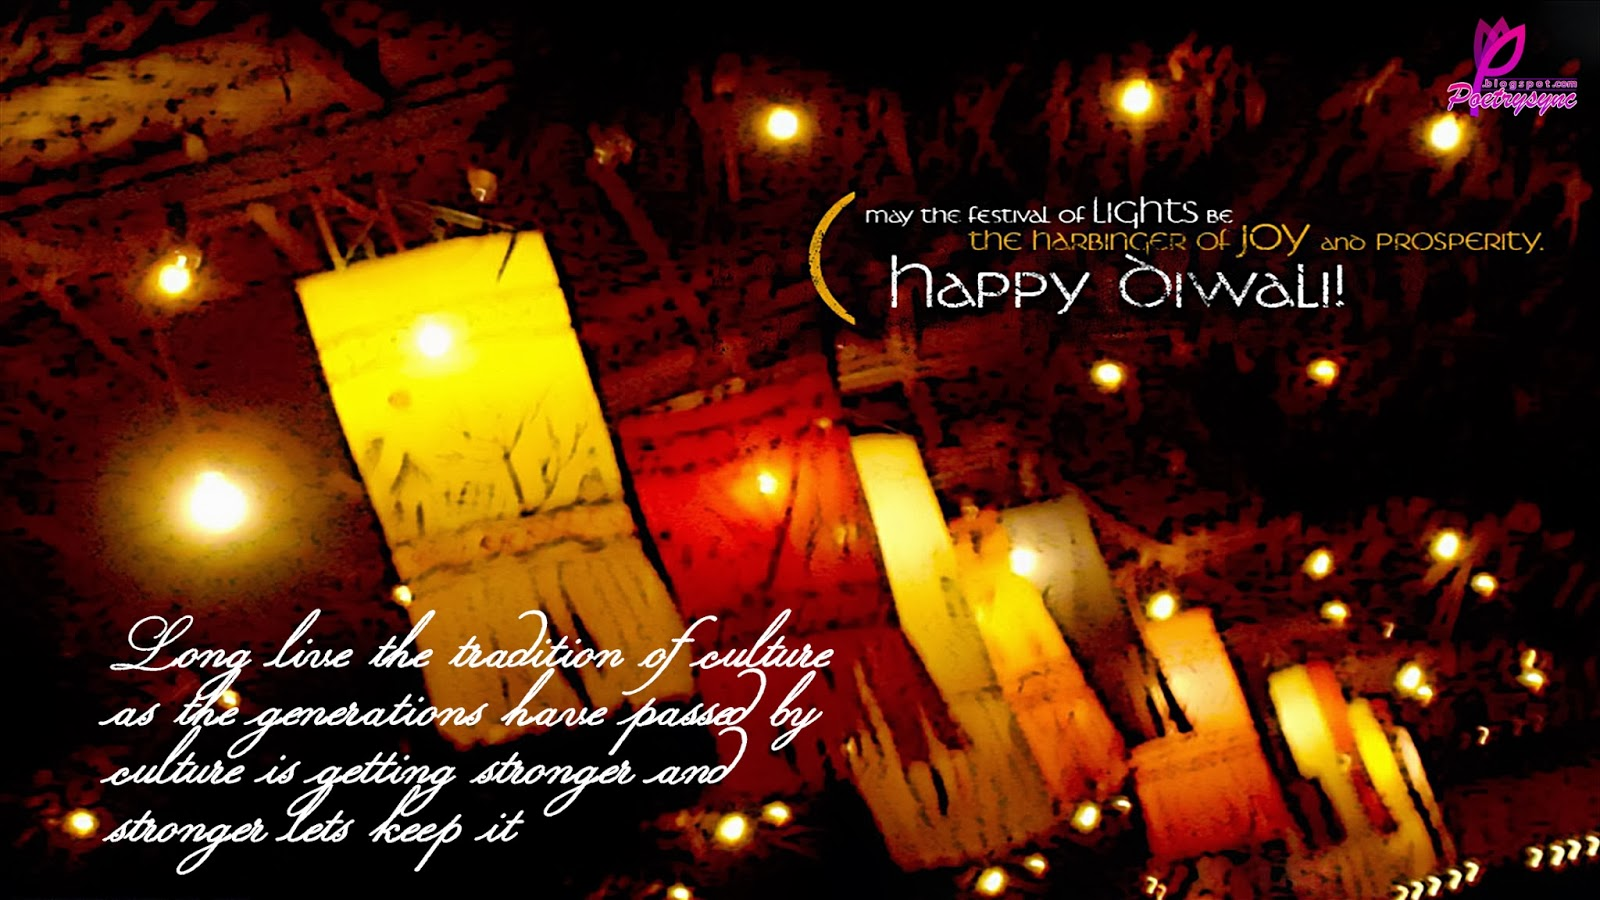 Download Awesome HD Diwali Wallpaper In 2015